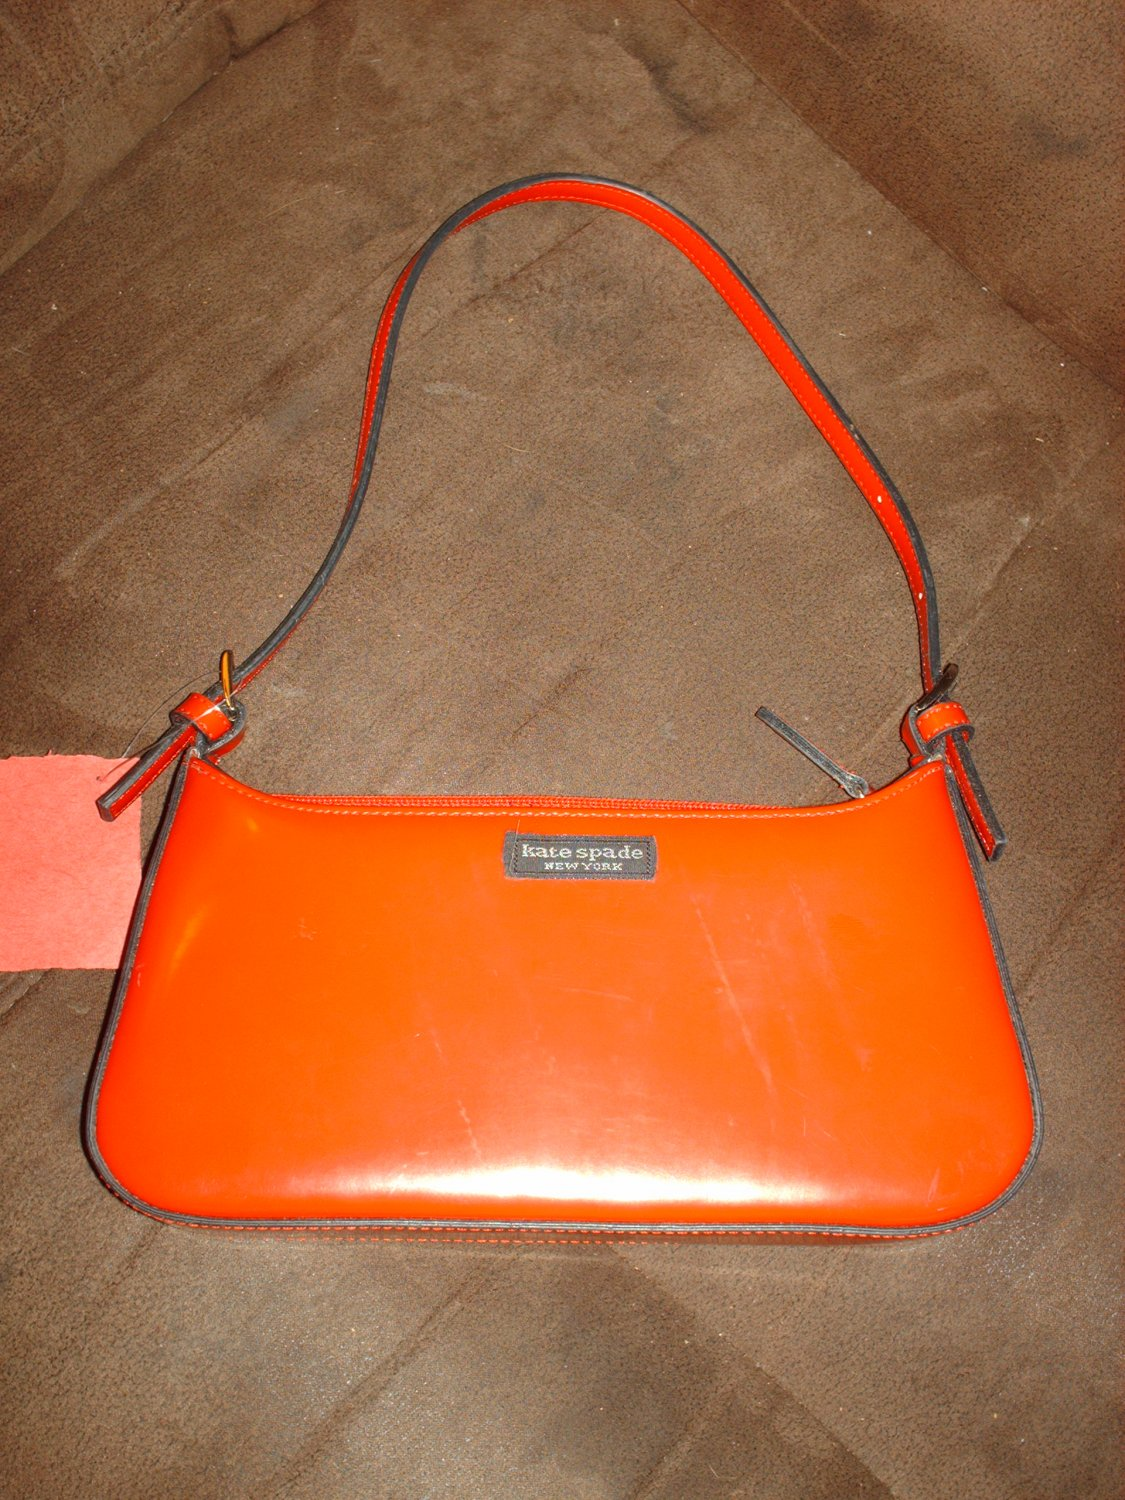 Kate Spade HandBag Purse Bright RED